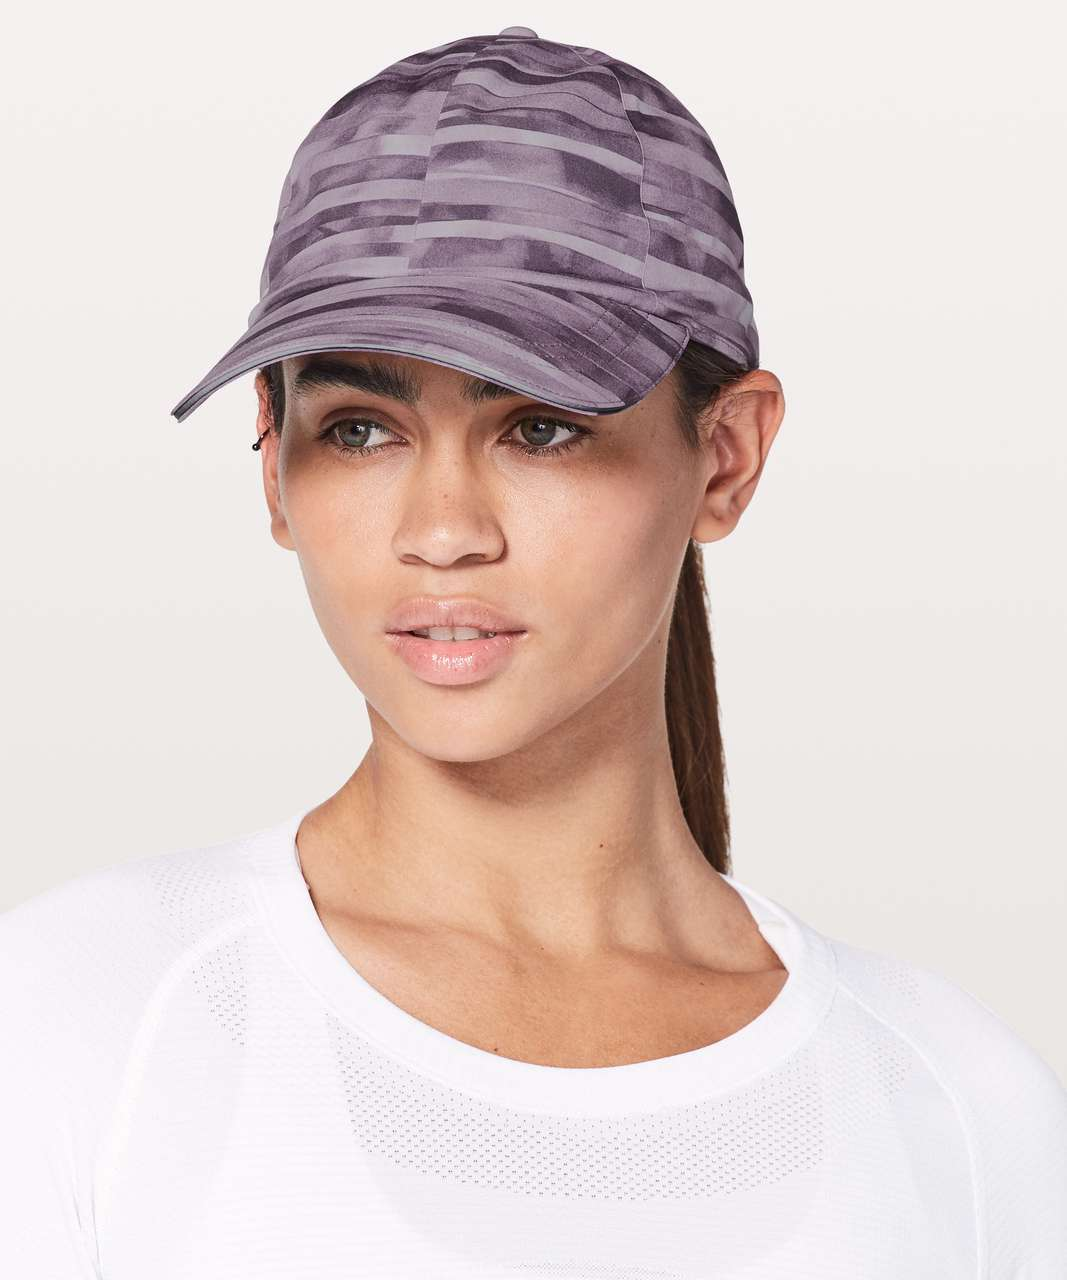 Lululemon Baller Hat Run *Ponytail - Shadowed Smoked Mullberry